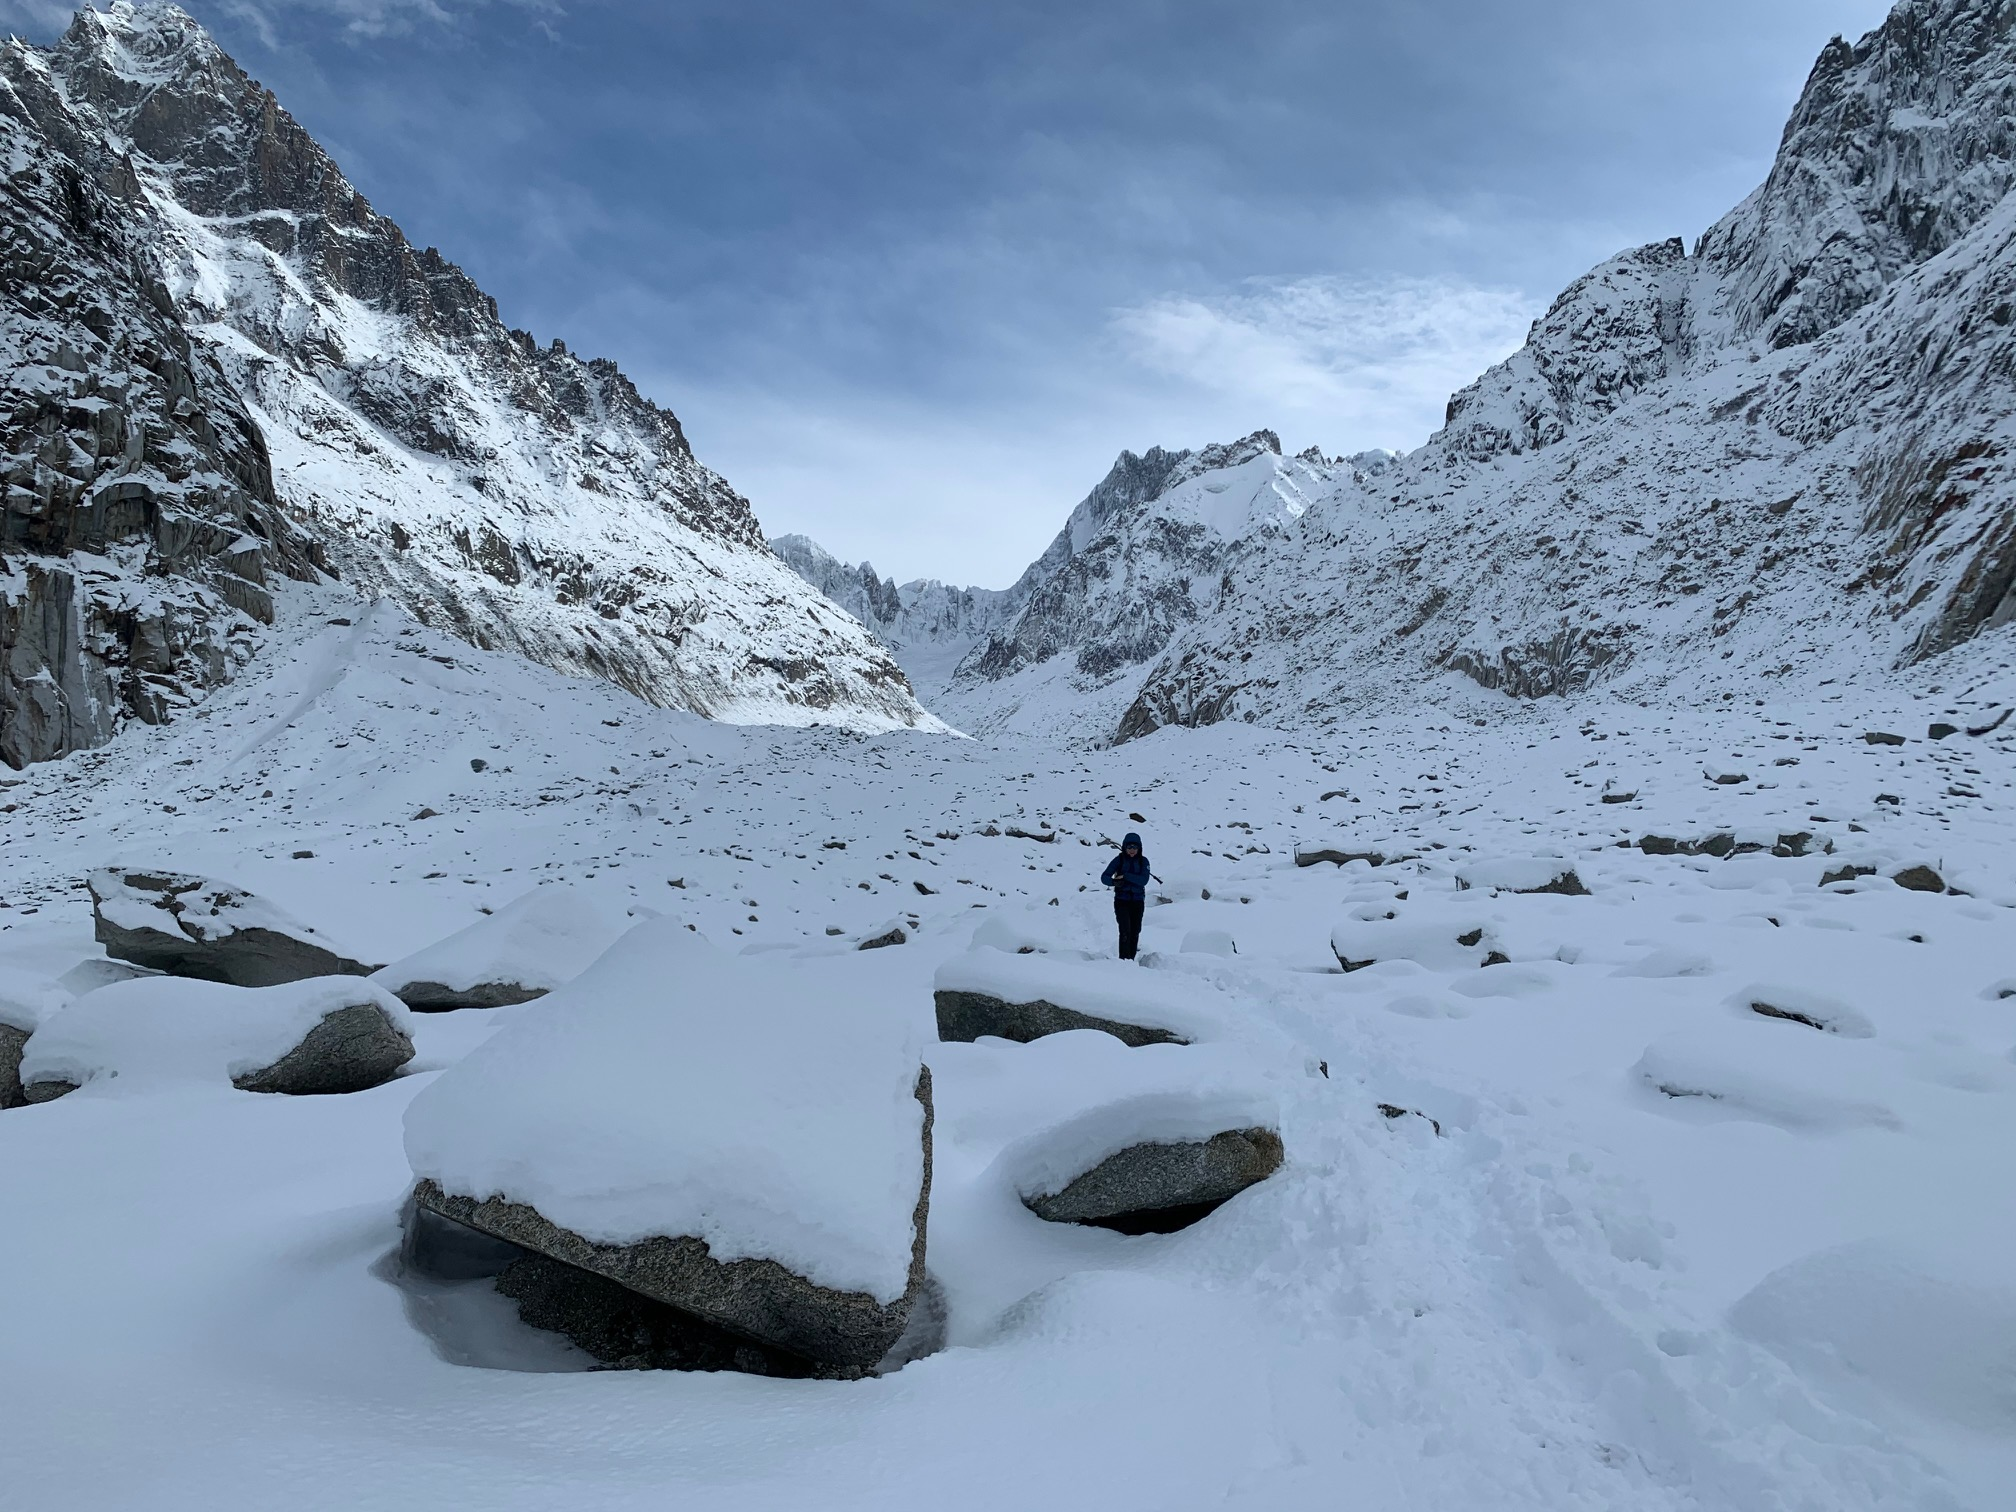 Early season on the Mer de Glace with Grabber Toe Warmers in our boots. Chamonix, France. ©Karen Bockel.